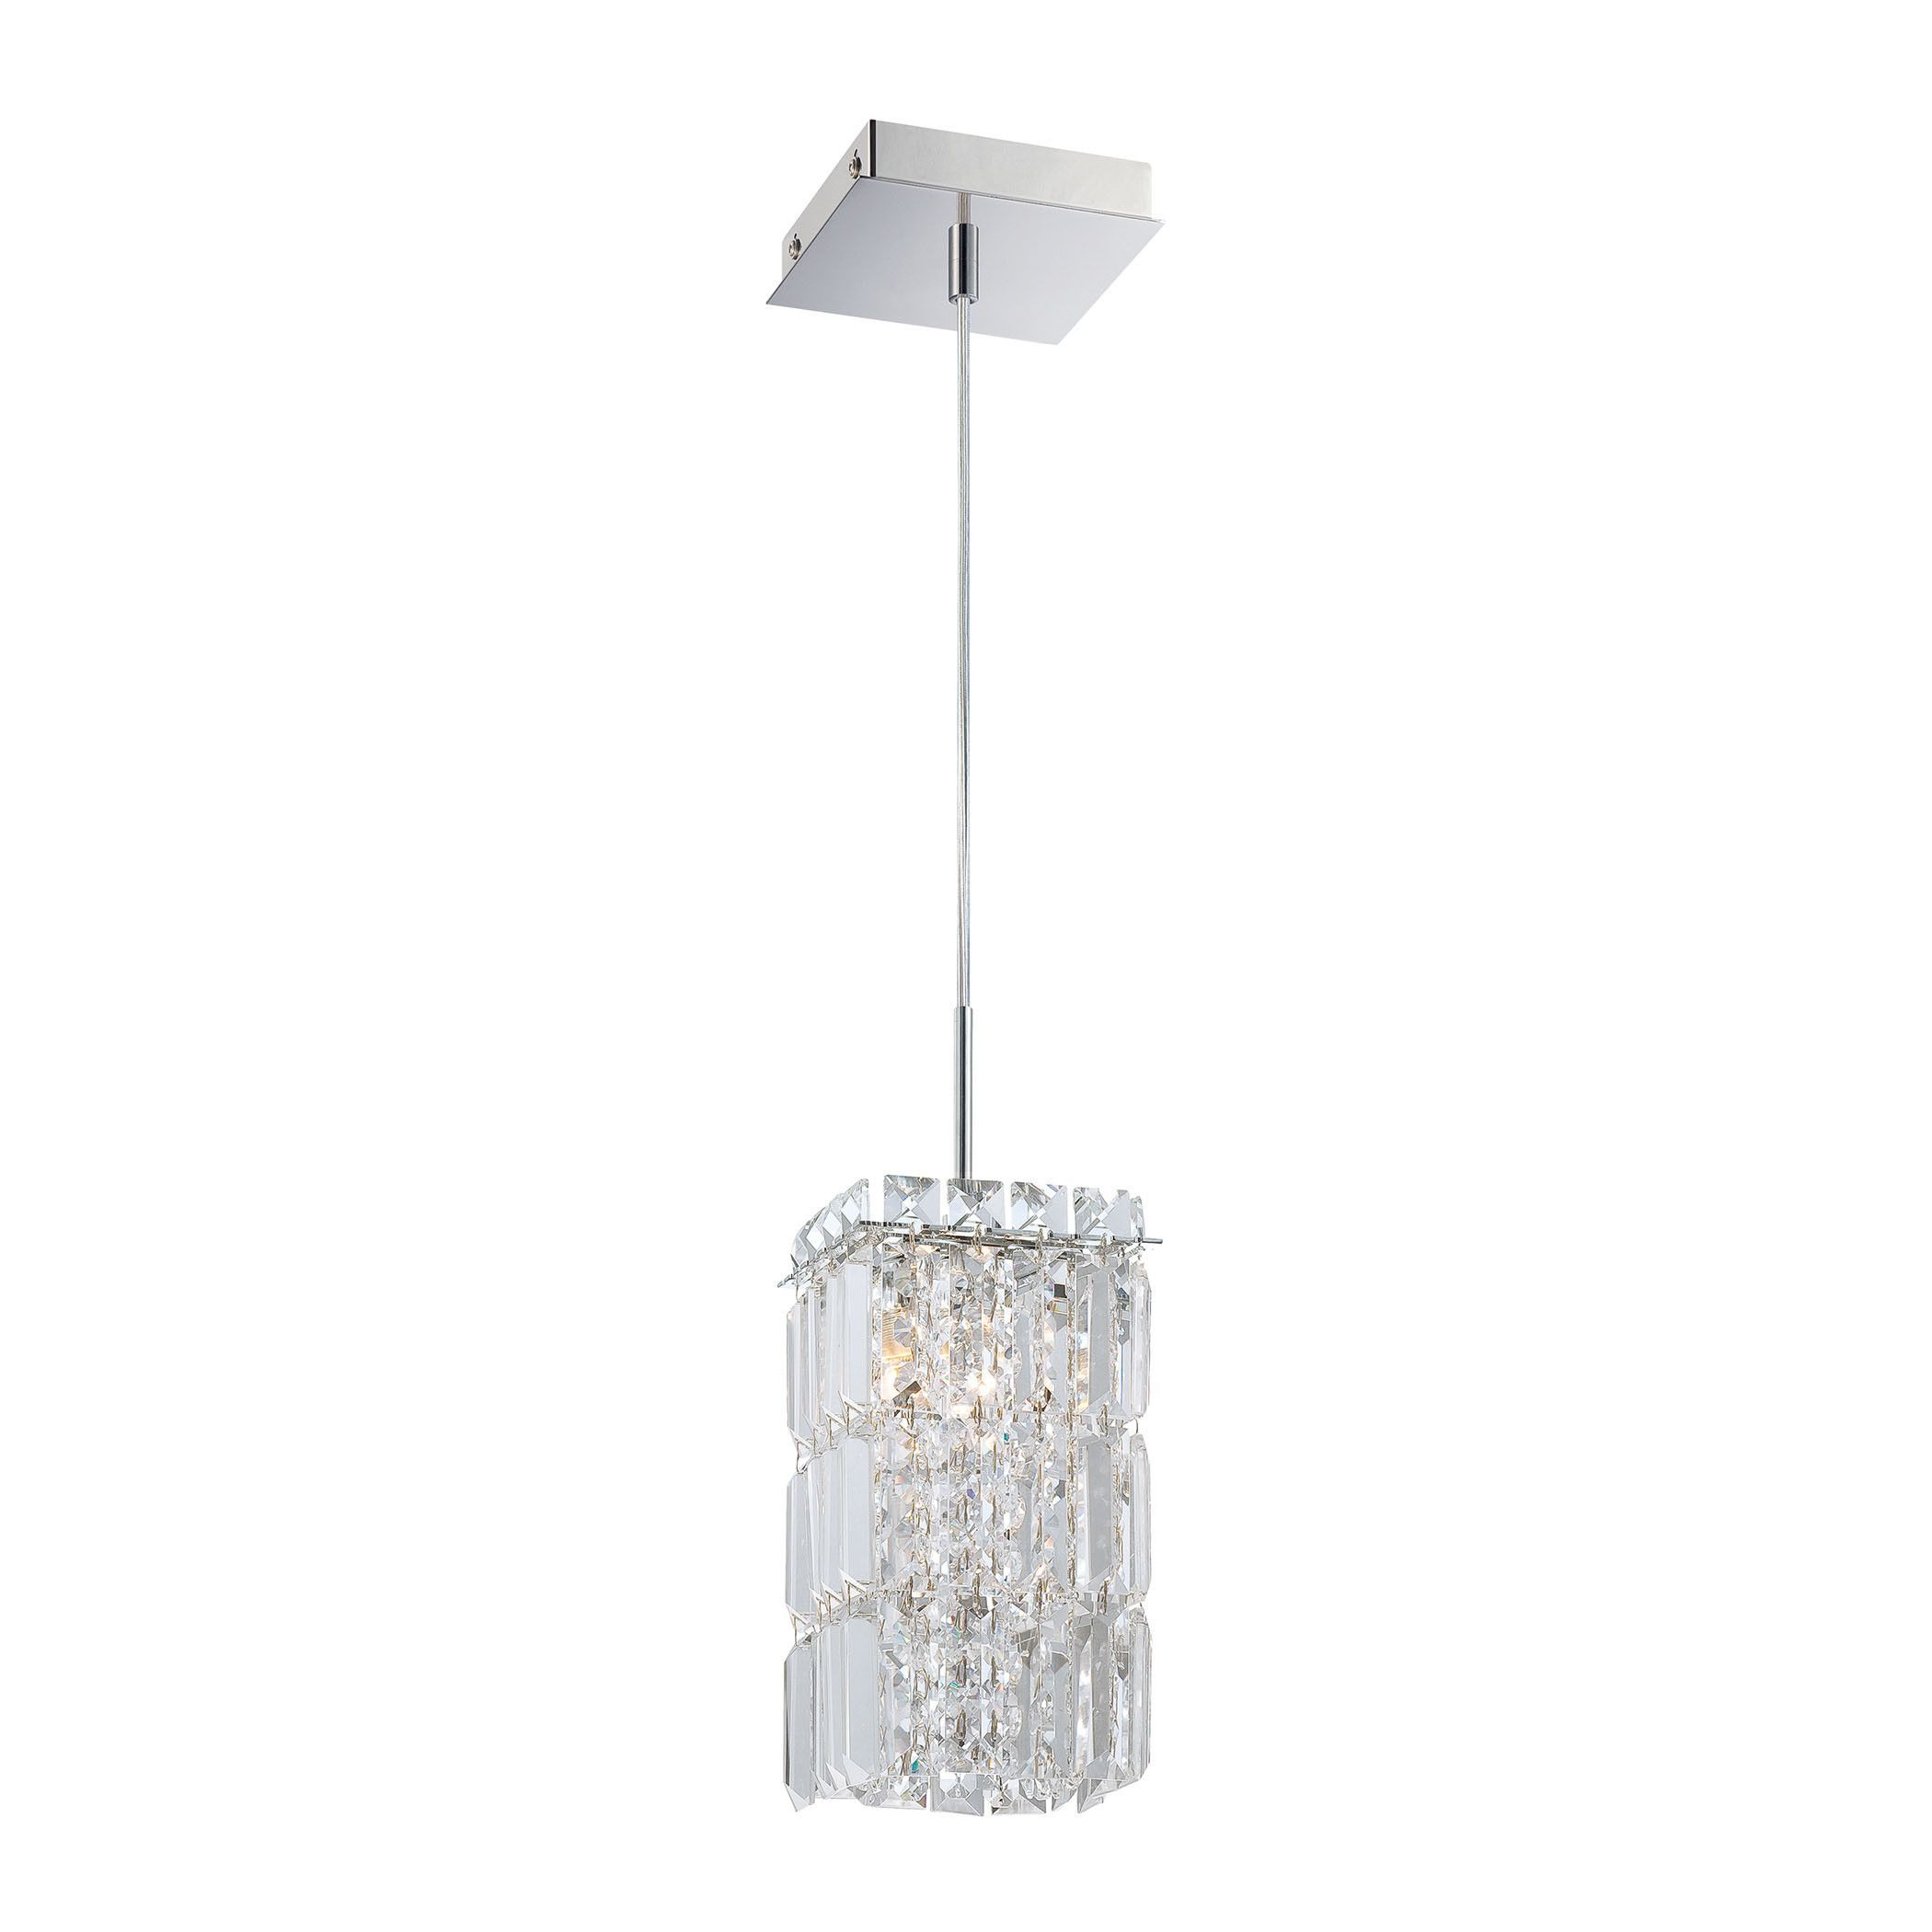 King 1 Light Pendant In Chrome And Clear Crystal Glass Includes